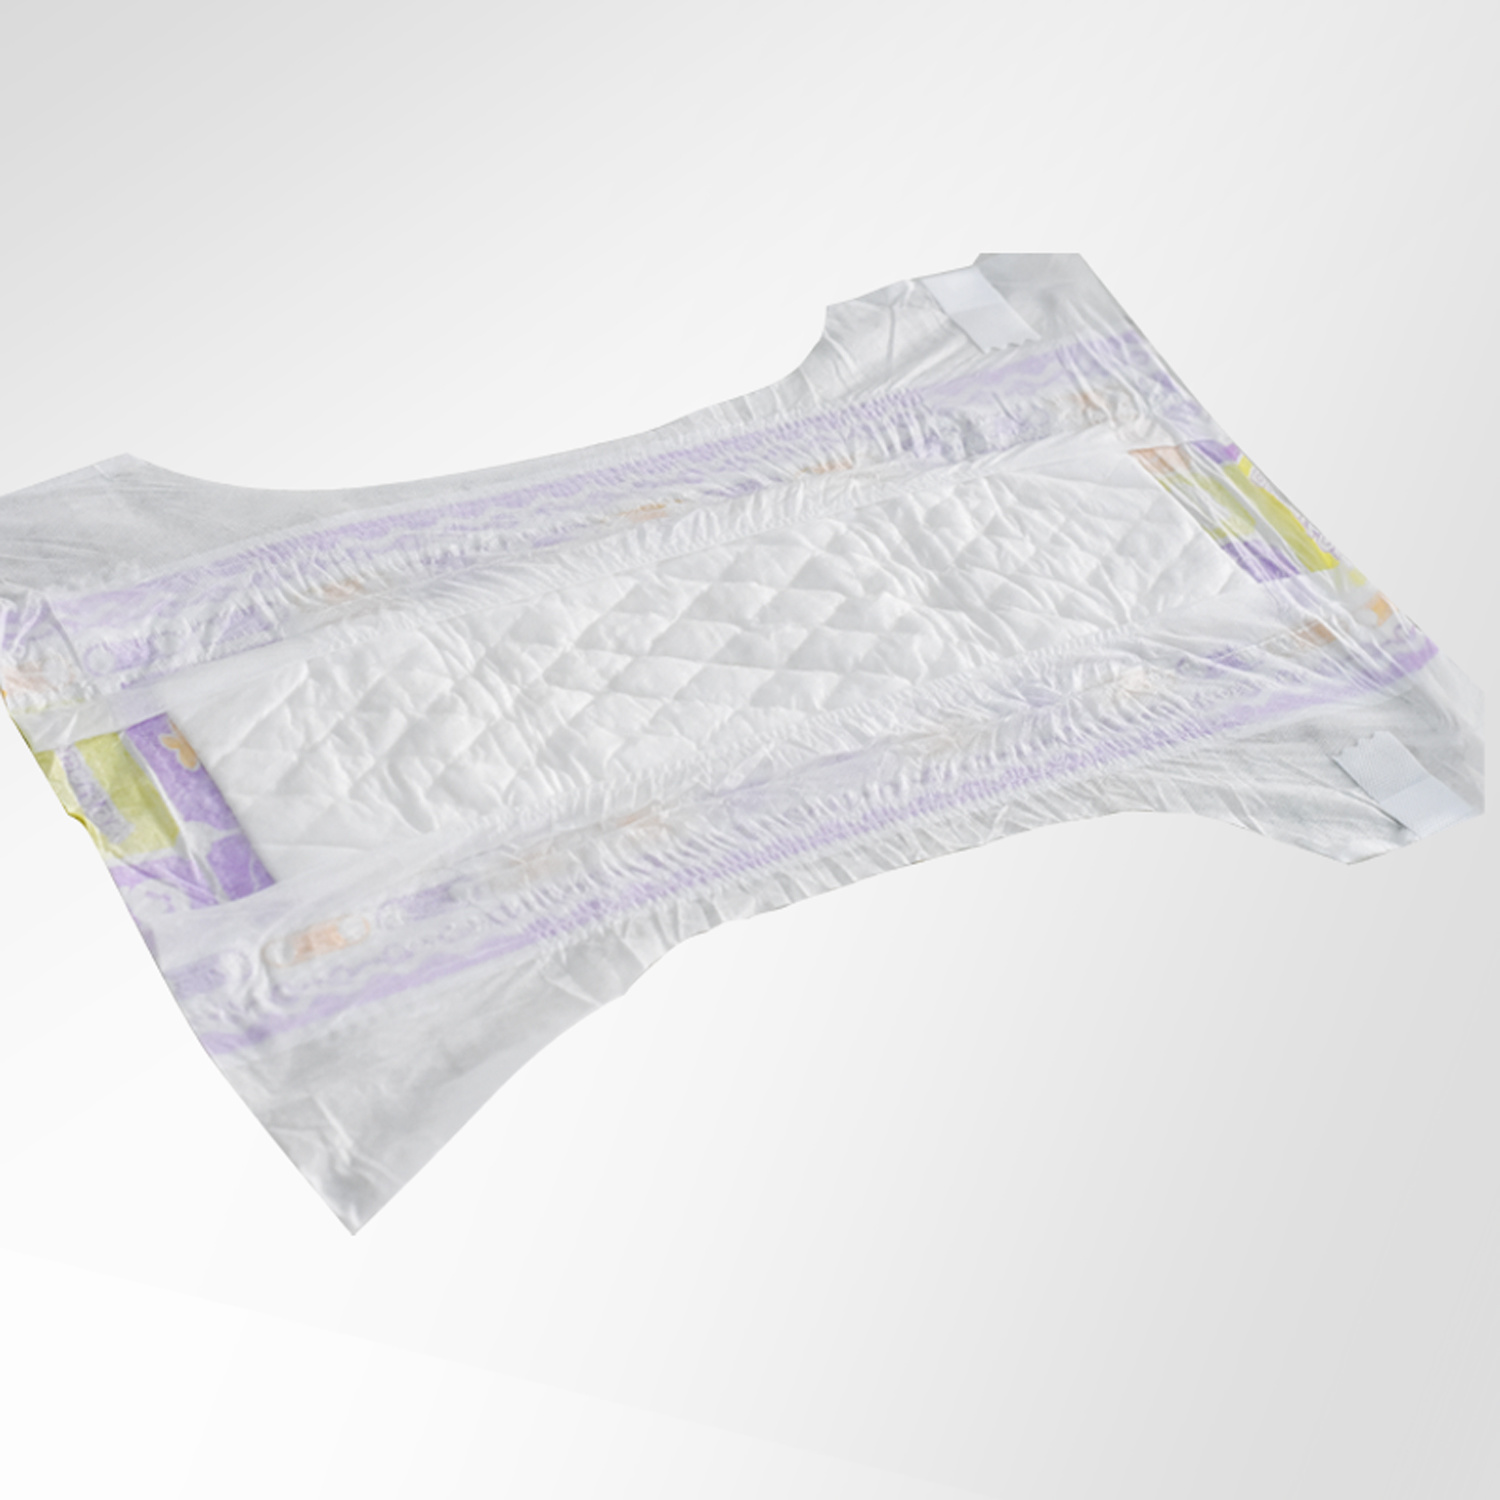 Disposable OEM Manufacturer Breathable Cloth-Like Back Sheet Incontinence Baby Diaper